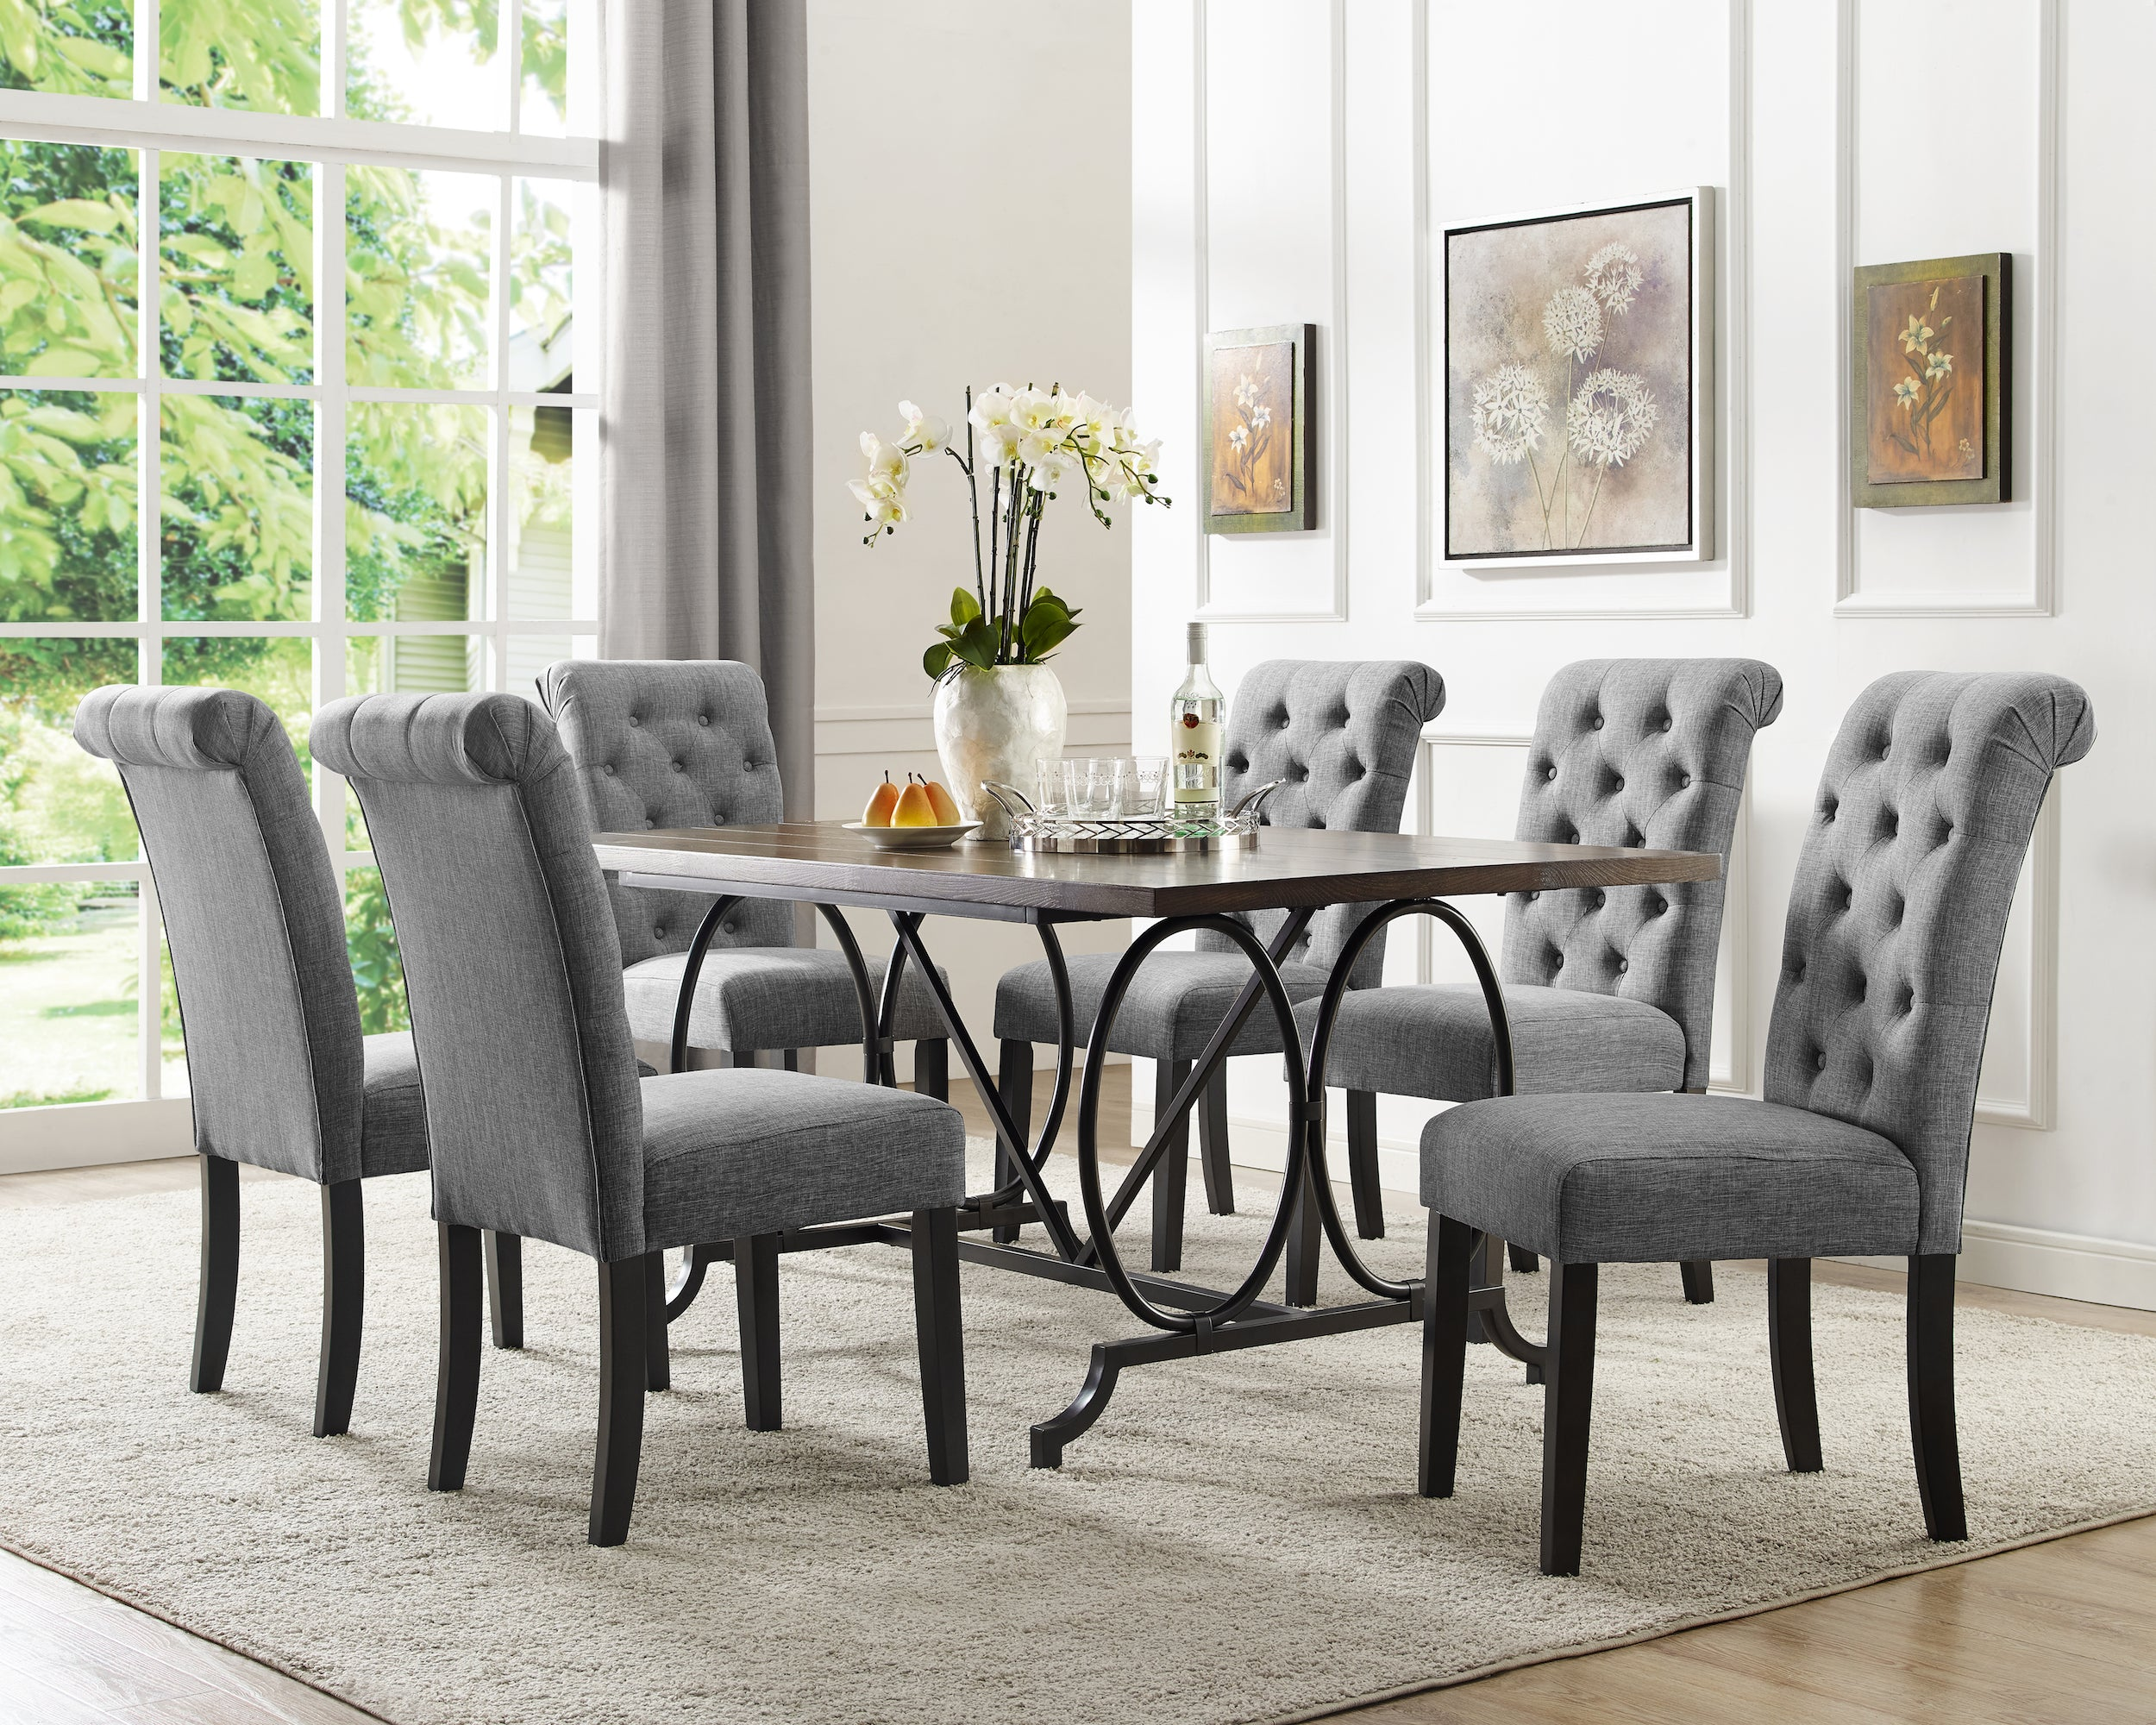 Tinga 7pc Dining Set - Grey | Candace and Basil Furniture